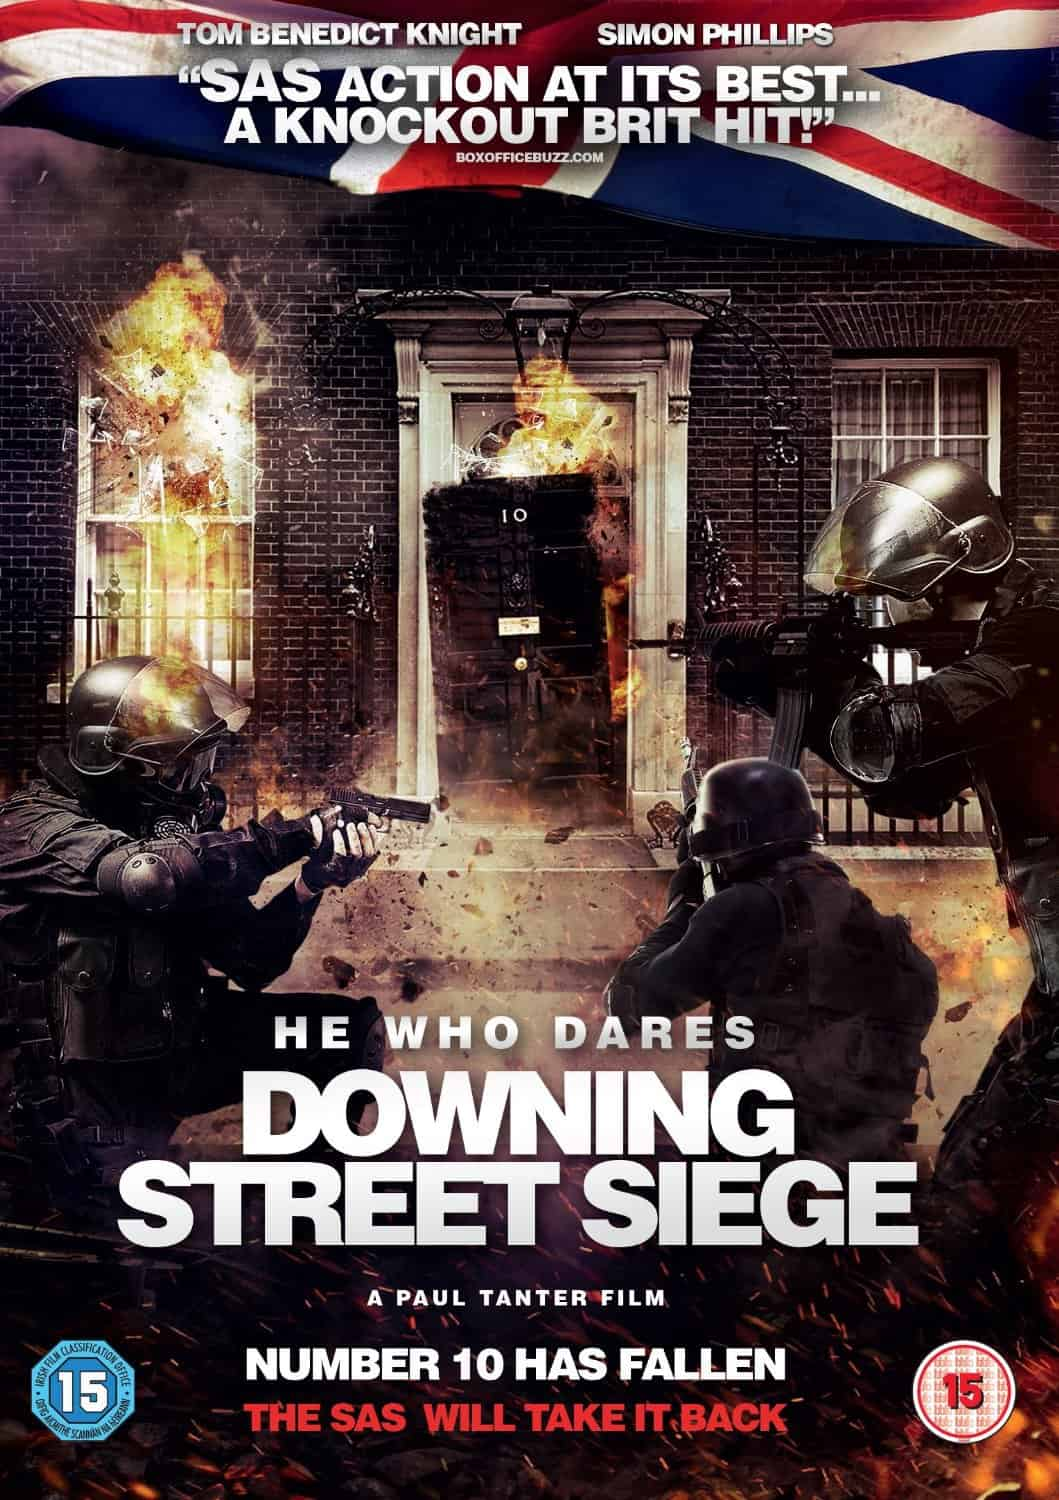 He who dares downing street siege blueprint review he who dares downing st siege dvd malvernweather Images